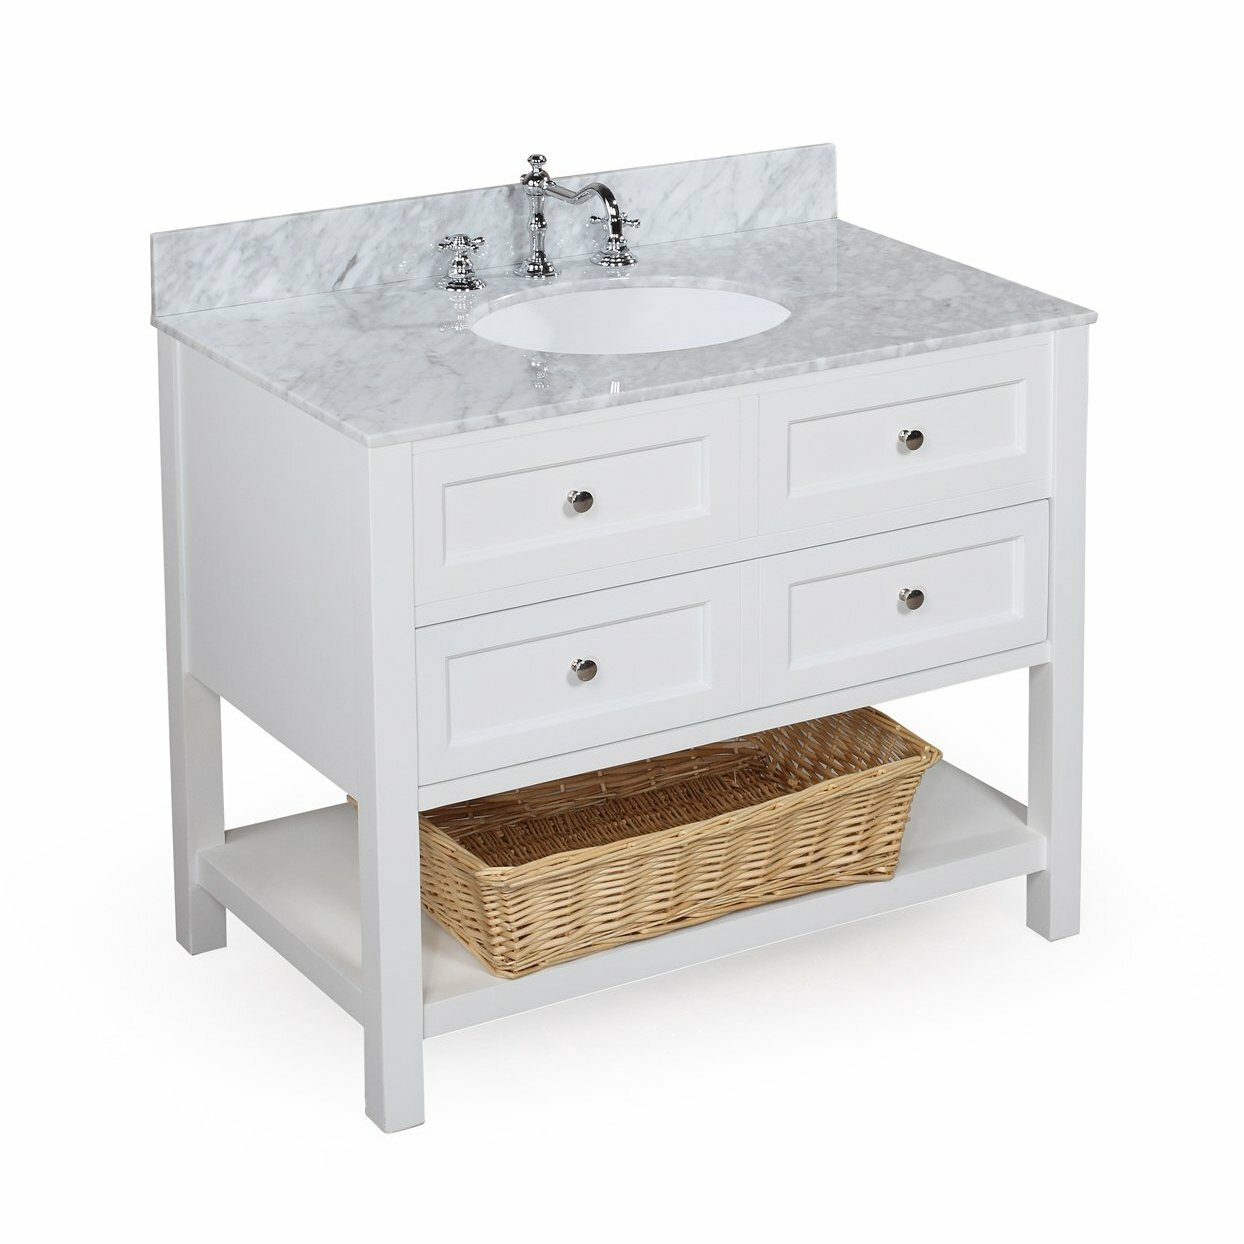 Pottery Barn Vanity for Bathroom Cabinet Design Ideas: Farmhouse Bathroom Sink Vanity | Potterybarn Bathrooms | Pottery Barn Vanity